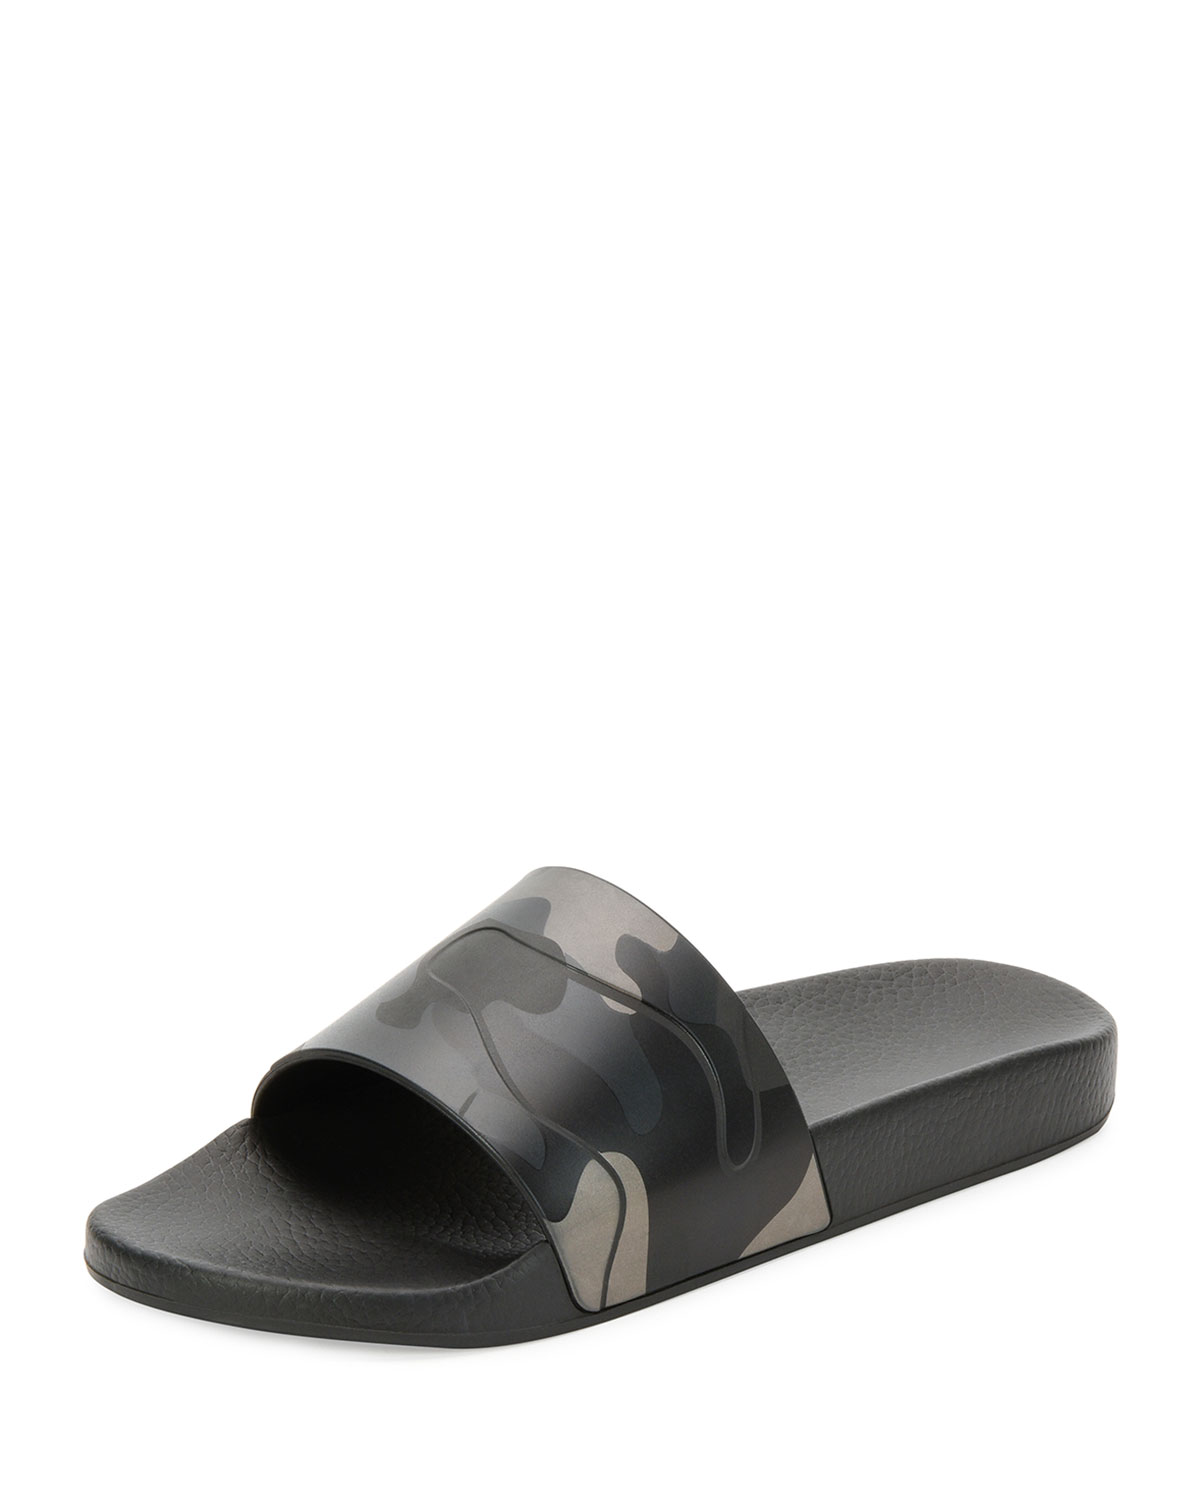 Valentino CAMOUFLAGE PRINTED RUBBER SLIDE SANDALS